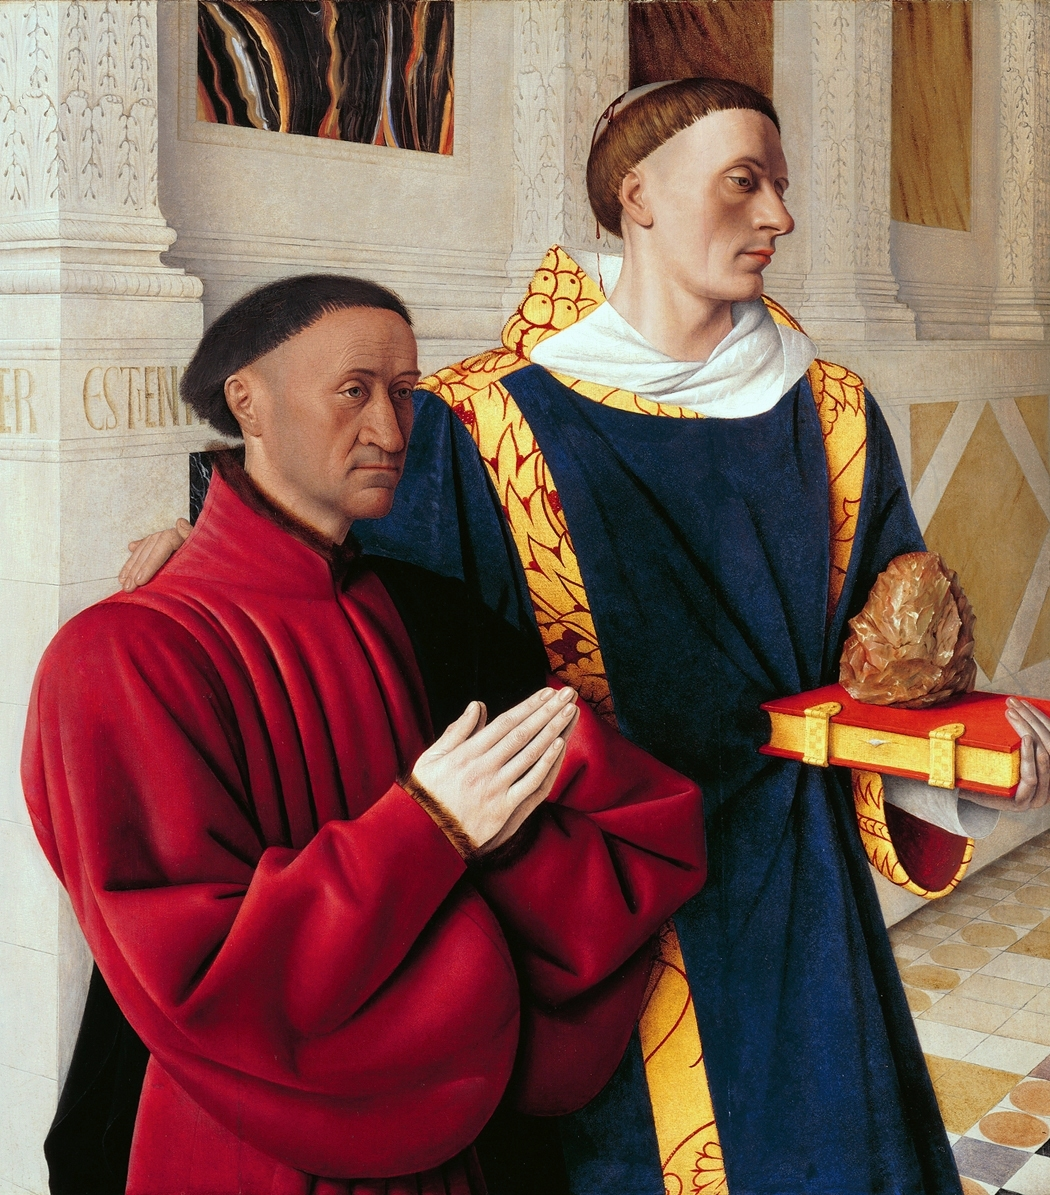 http://upload.wikimedia.org/wikipedia/commons/8/81/Jean_Fouquet_006.jpg